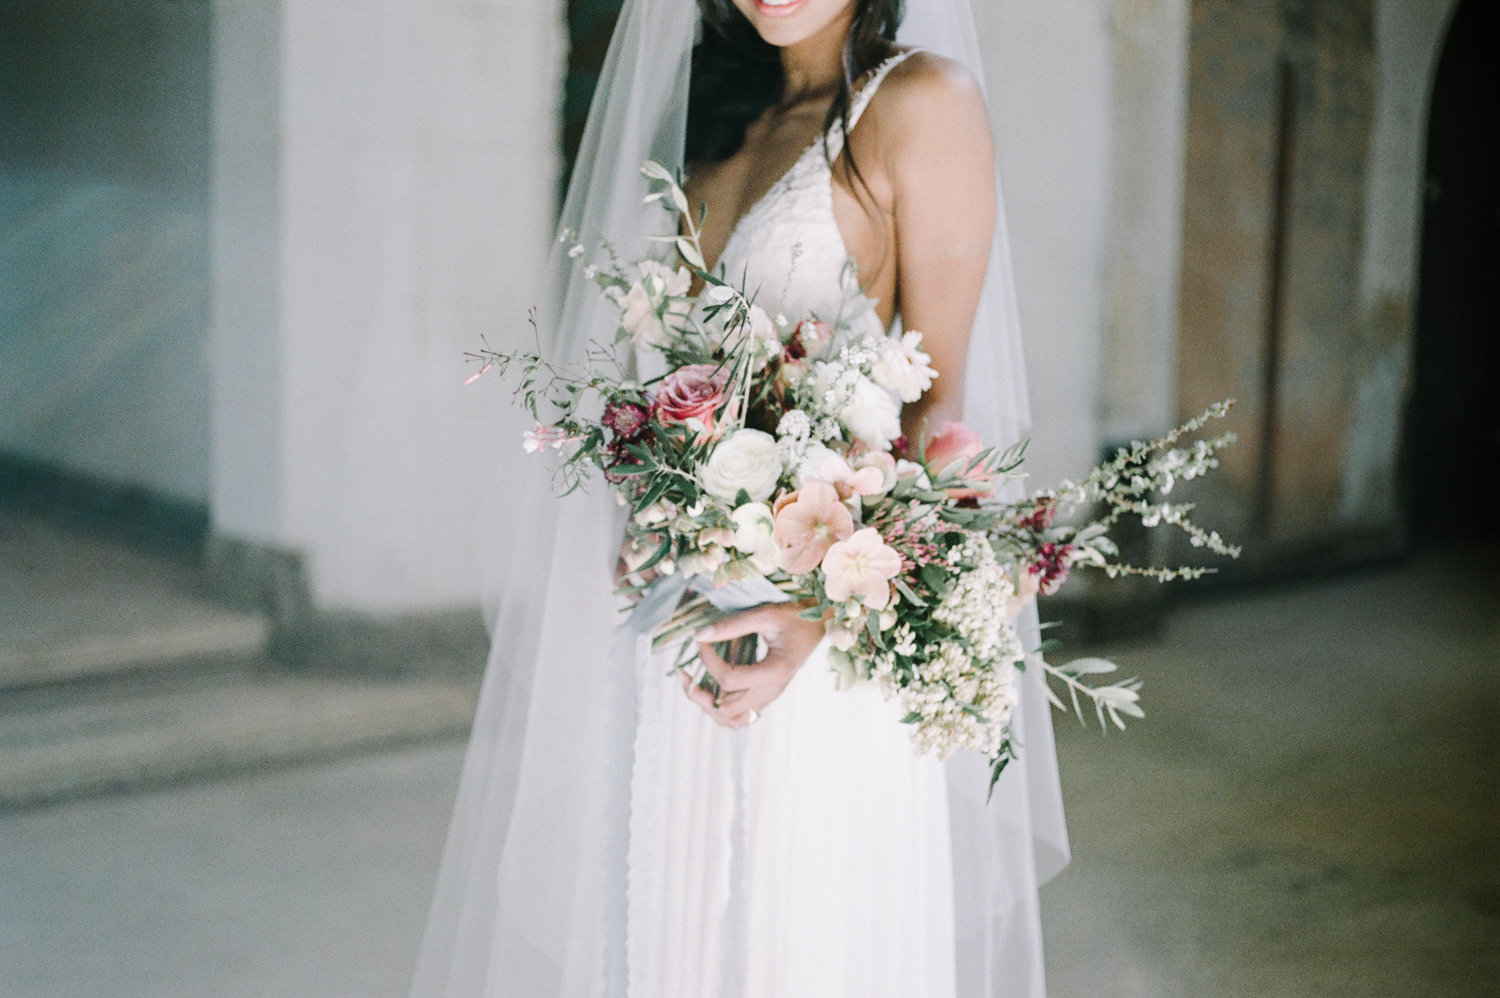 A bride holds a lush bouquet of roses, hellebores, and olive leaves in an abandoned cathedral, the location of her destination wedding photos